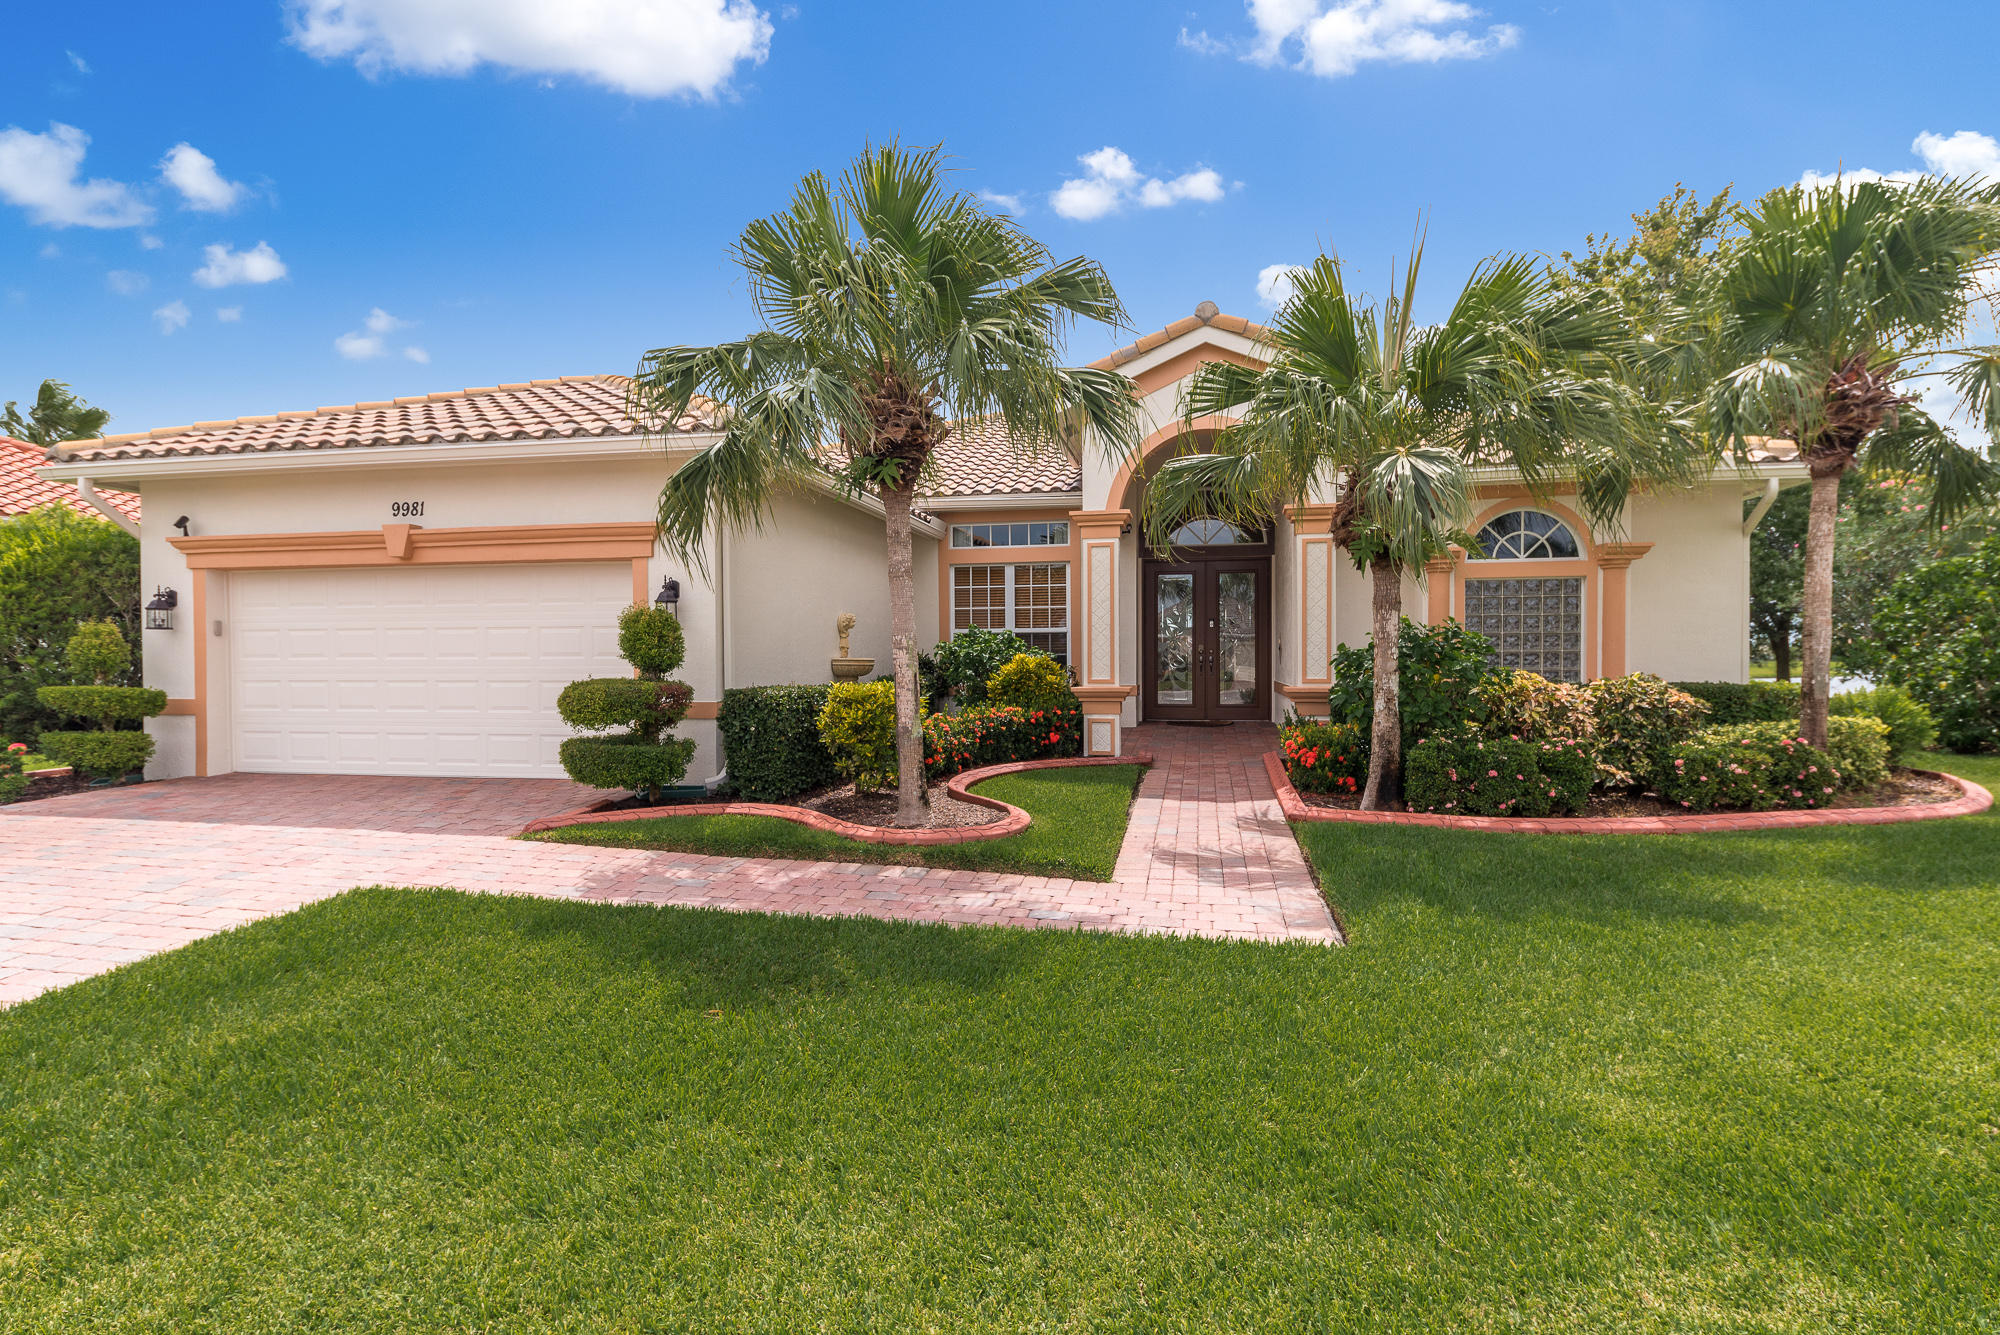 Details for 9981 Papaya Tree Court Sw, Port Saint Lucie, FL 34987